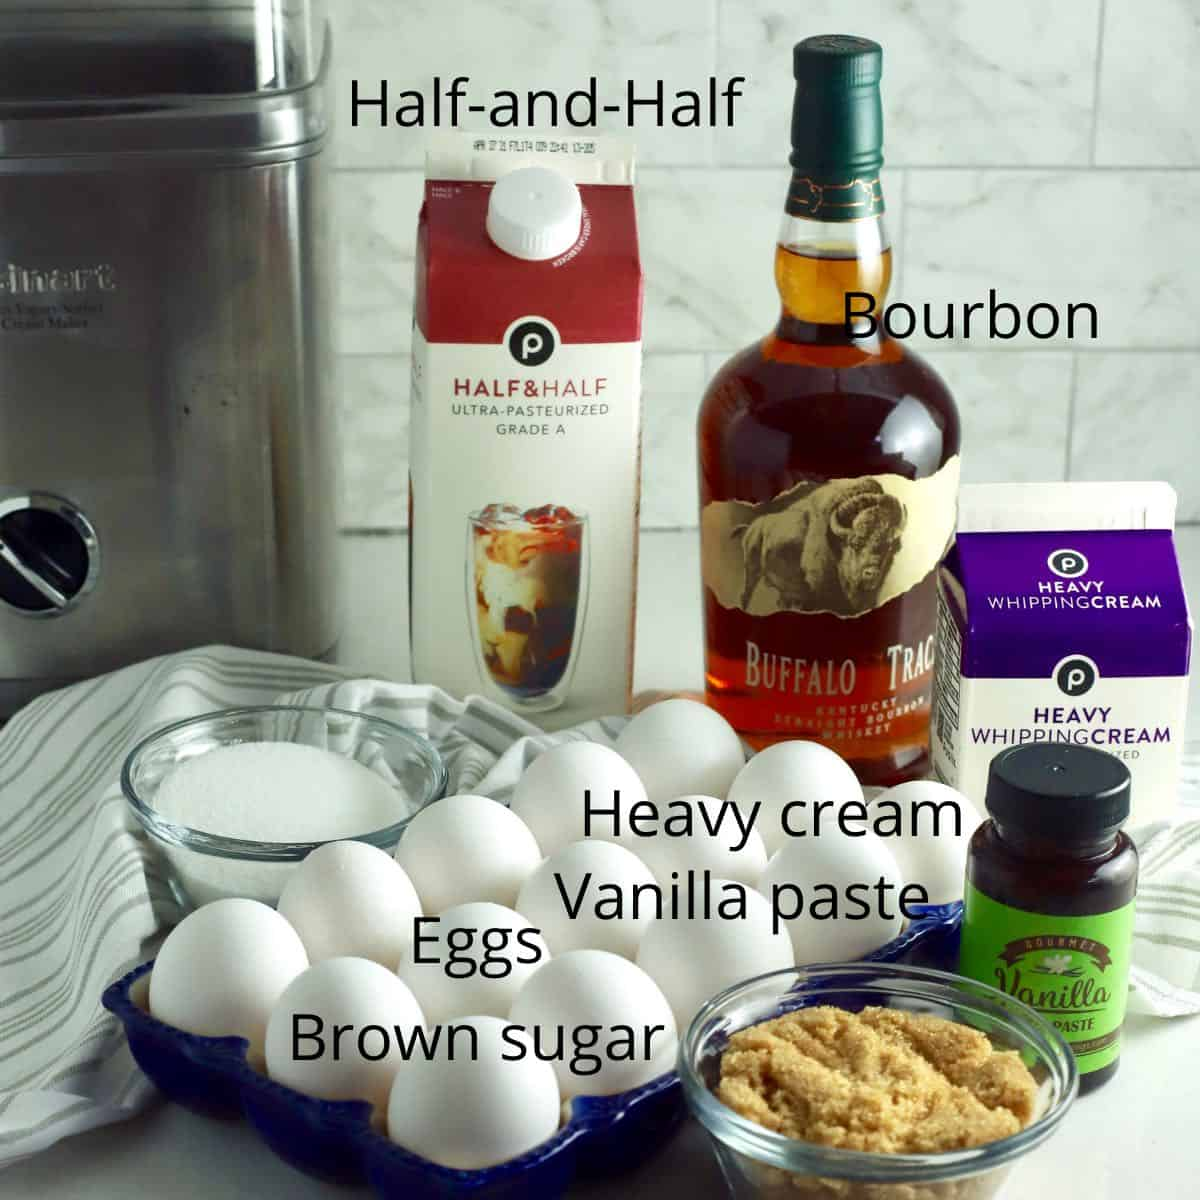 Ingredients for ice cream including eggs and heavy cream.